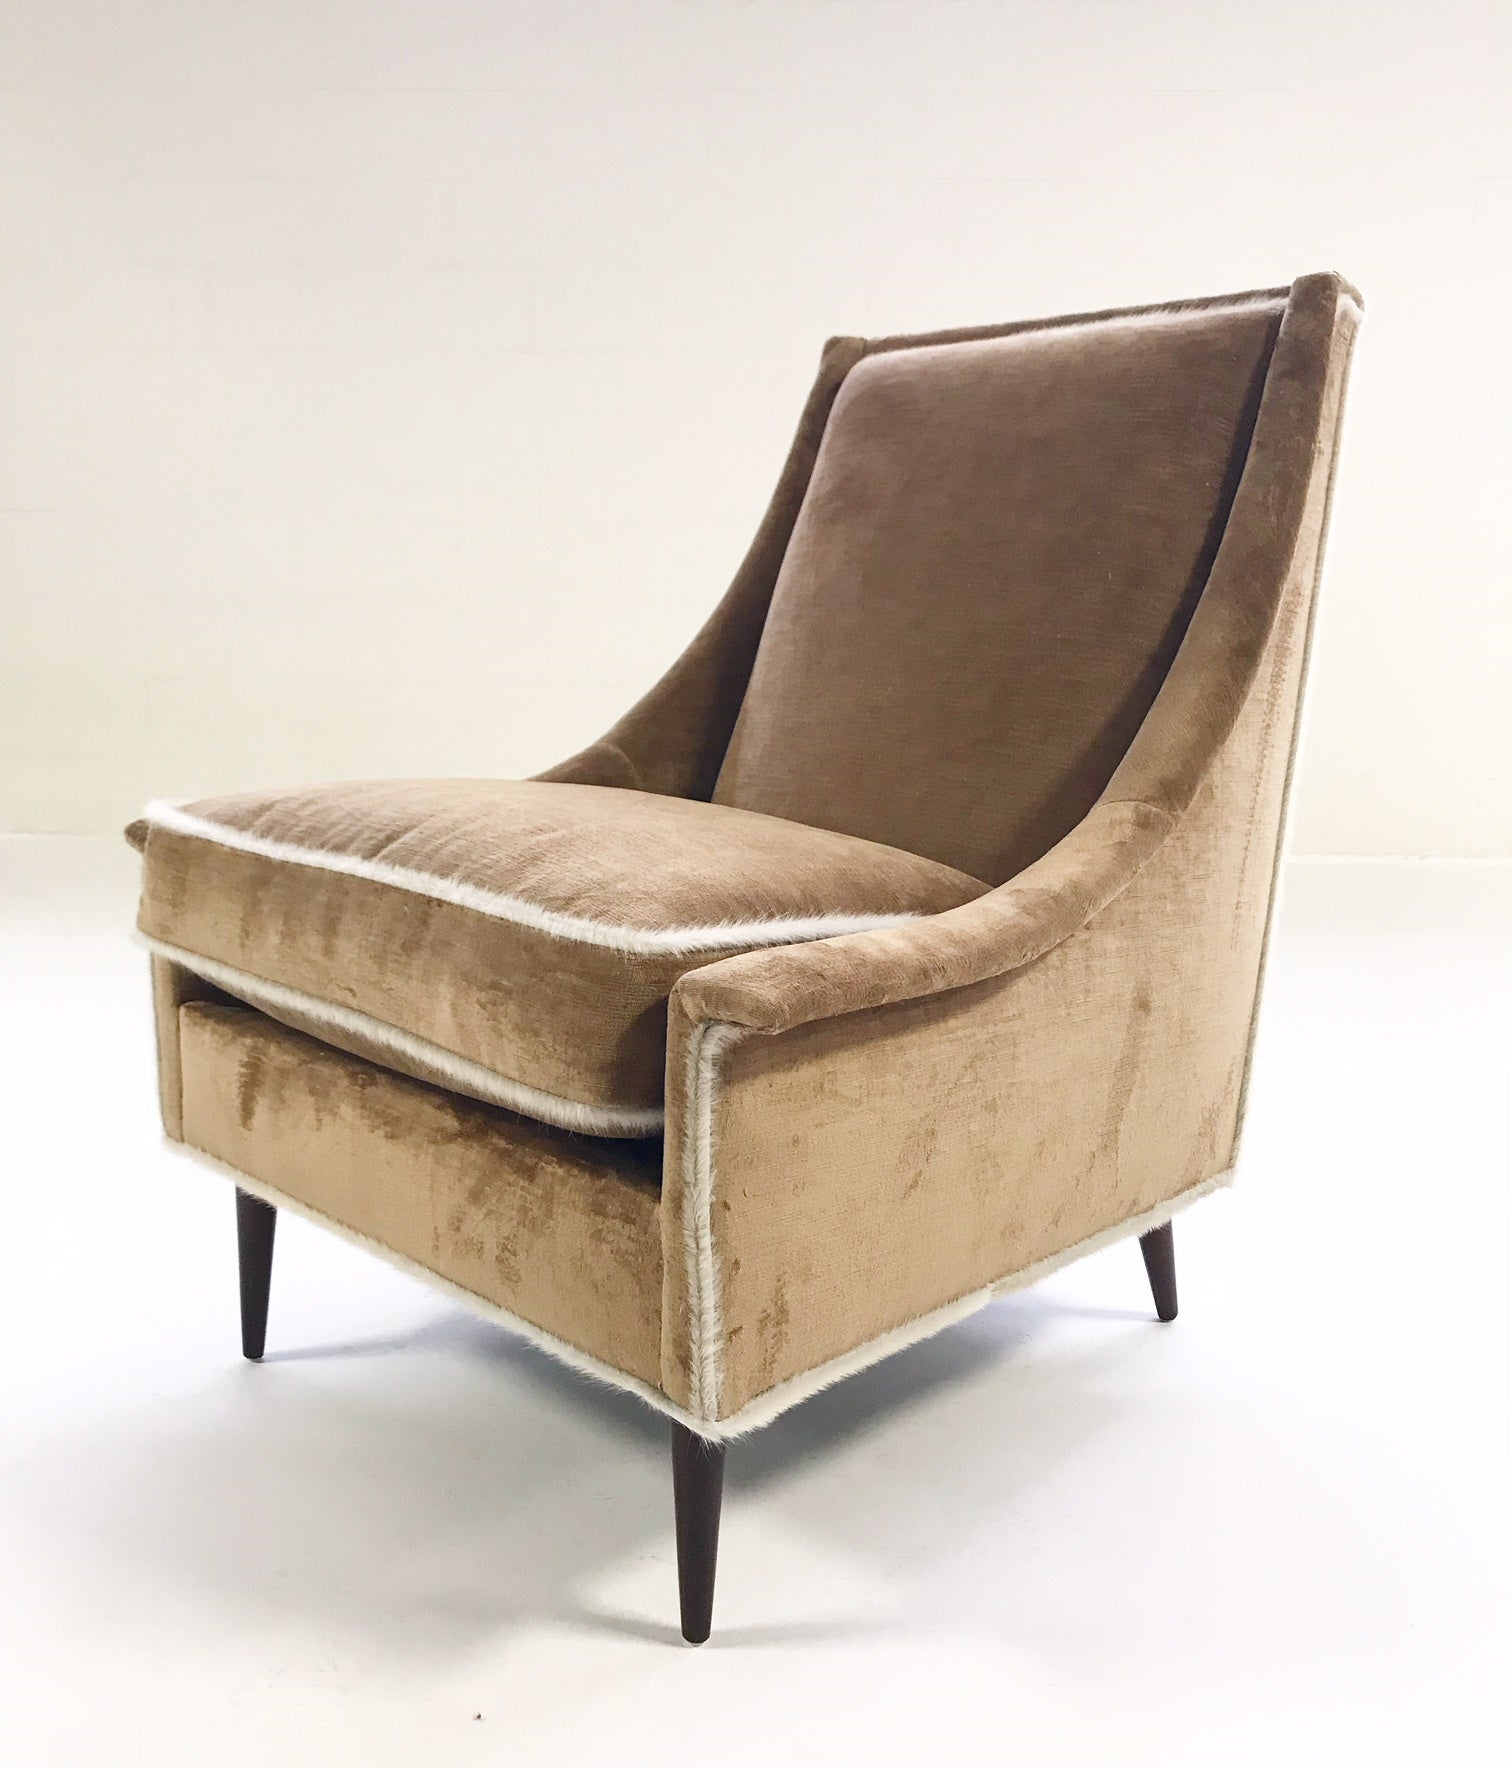 Lounge Chair and Ottoman in Ralph Lauren Linen Velvet - FORSYTH